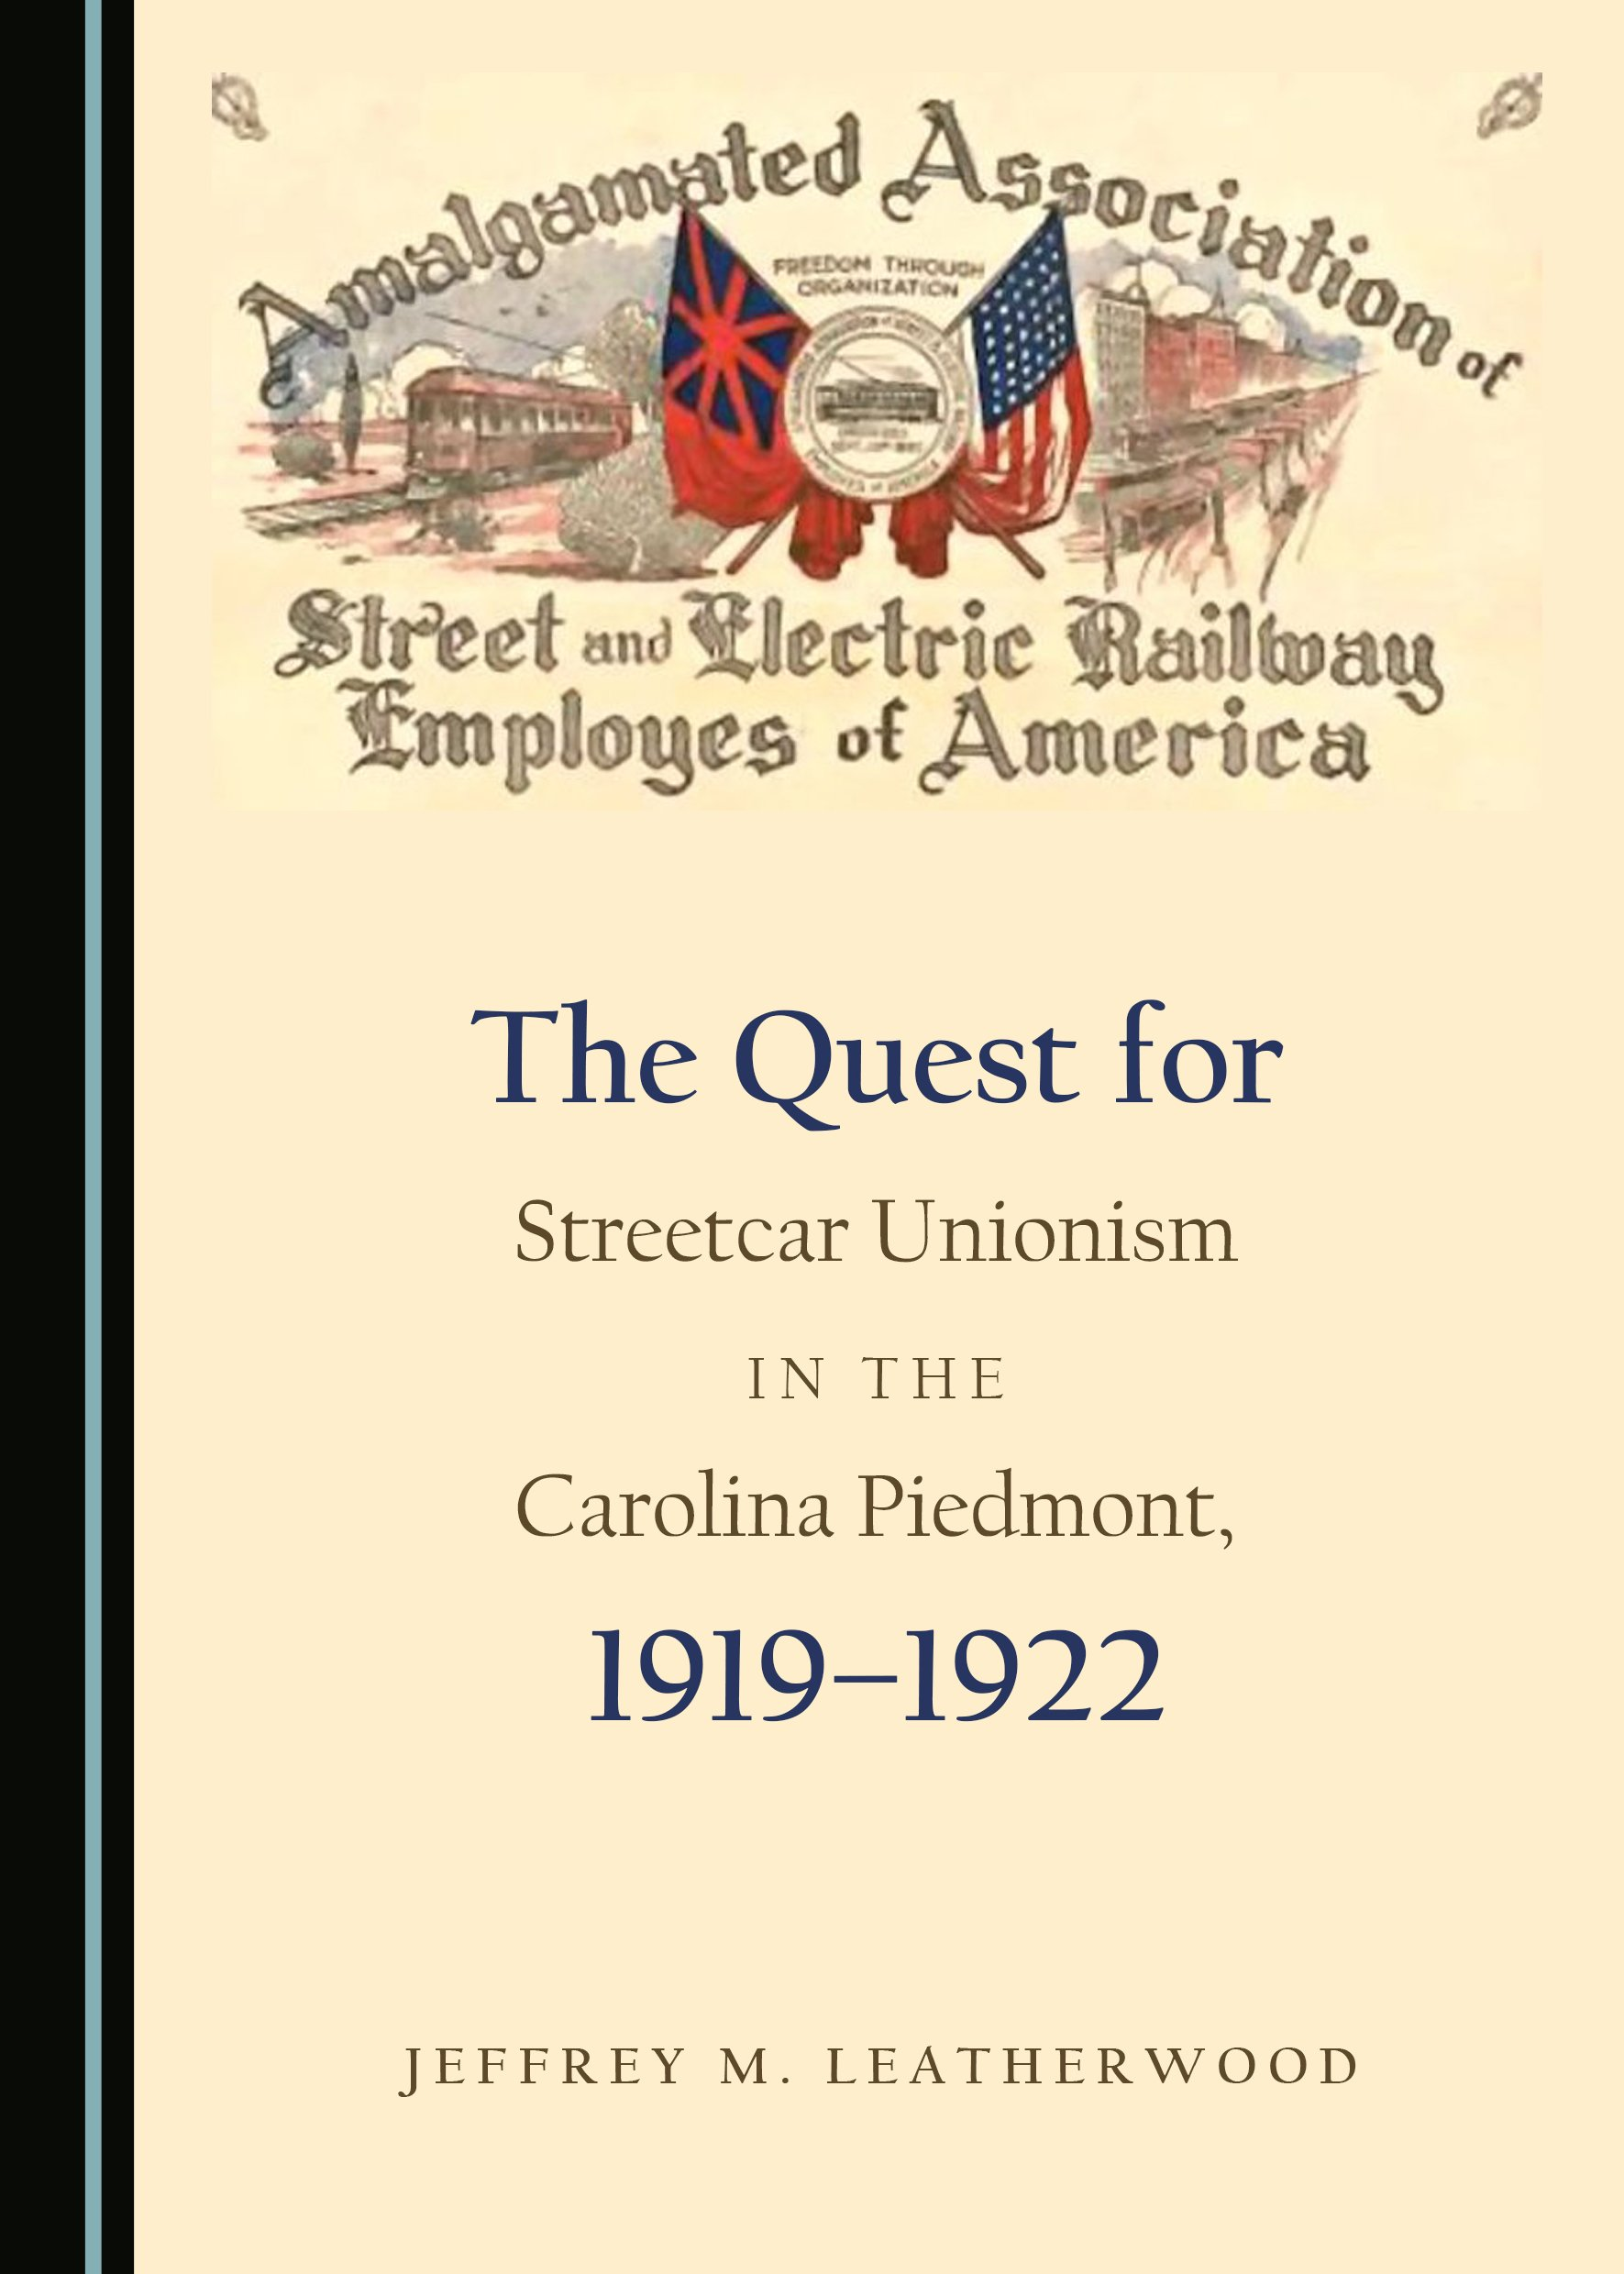 The Quest for Streetcar Unionism in the Carolina Piedmont, 1919-1922